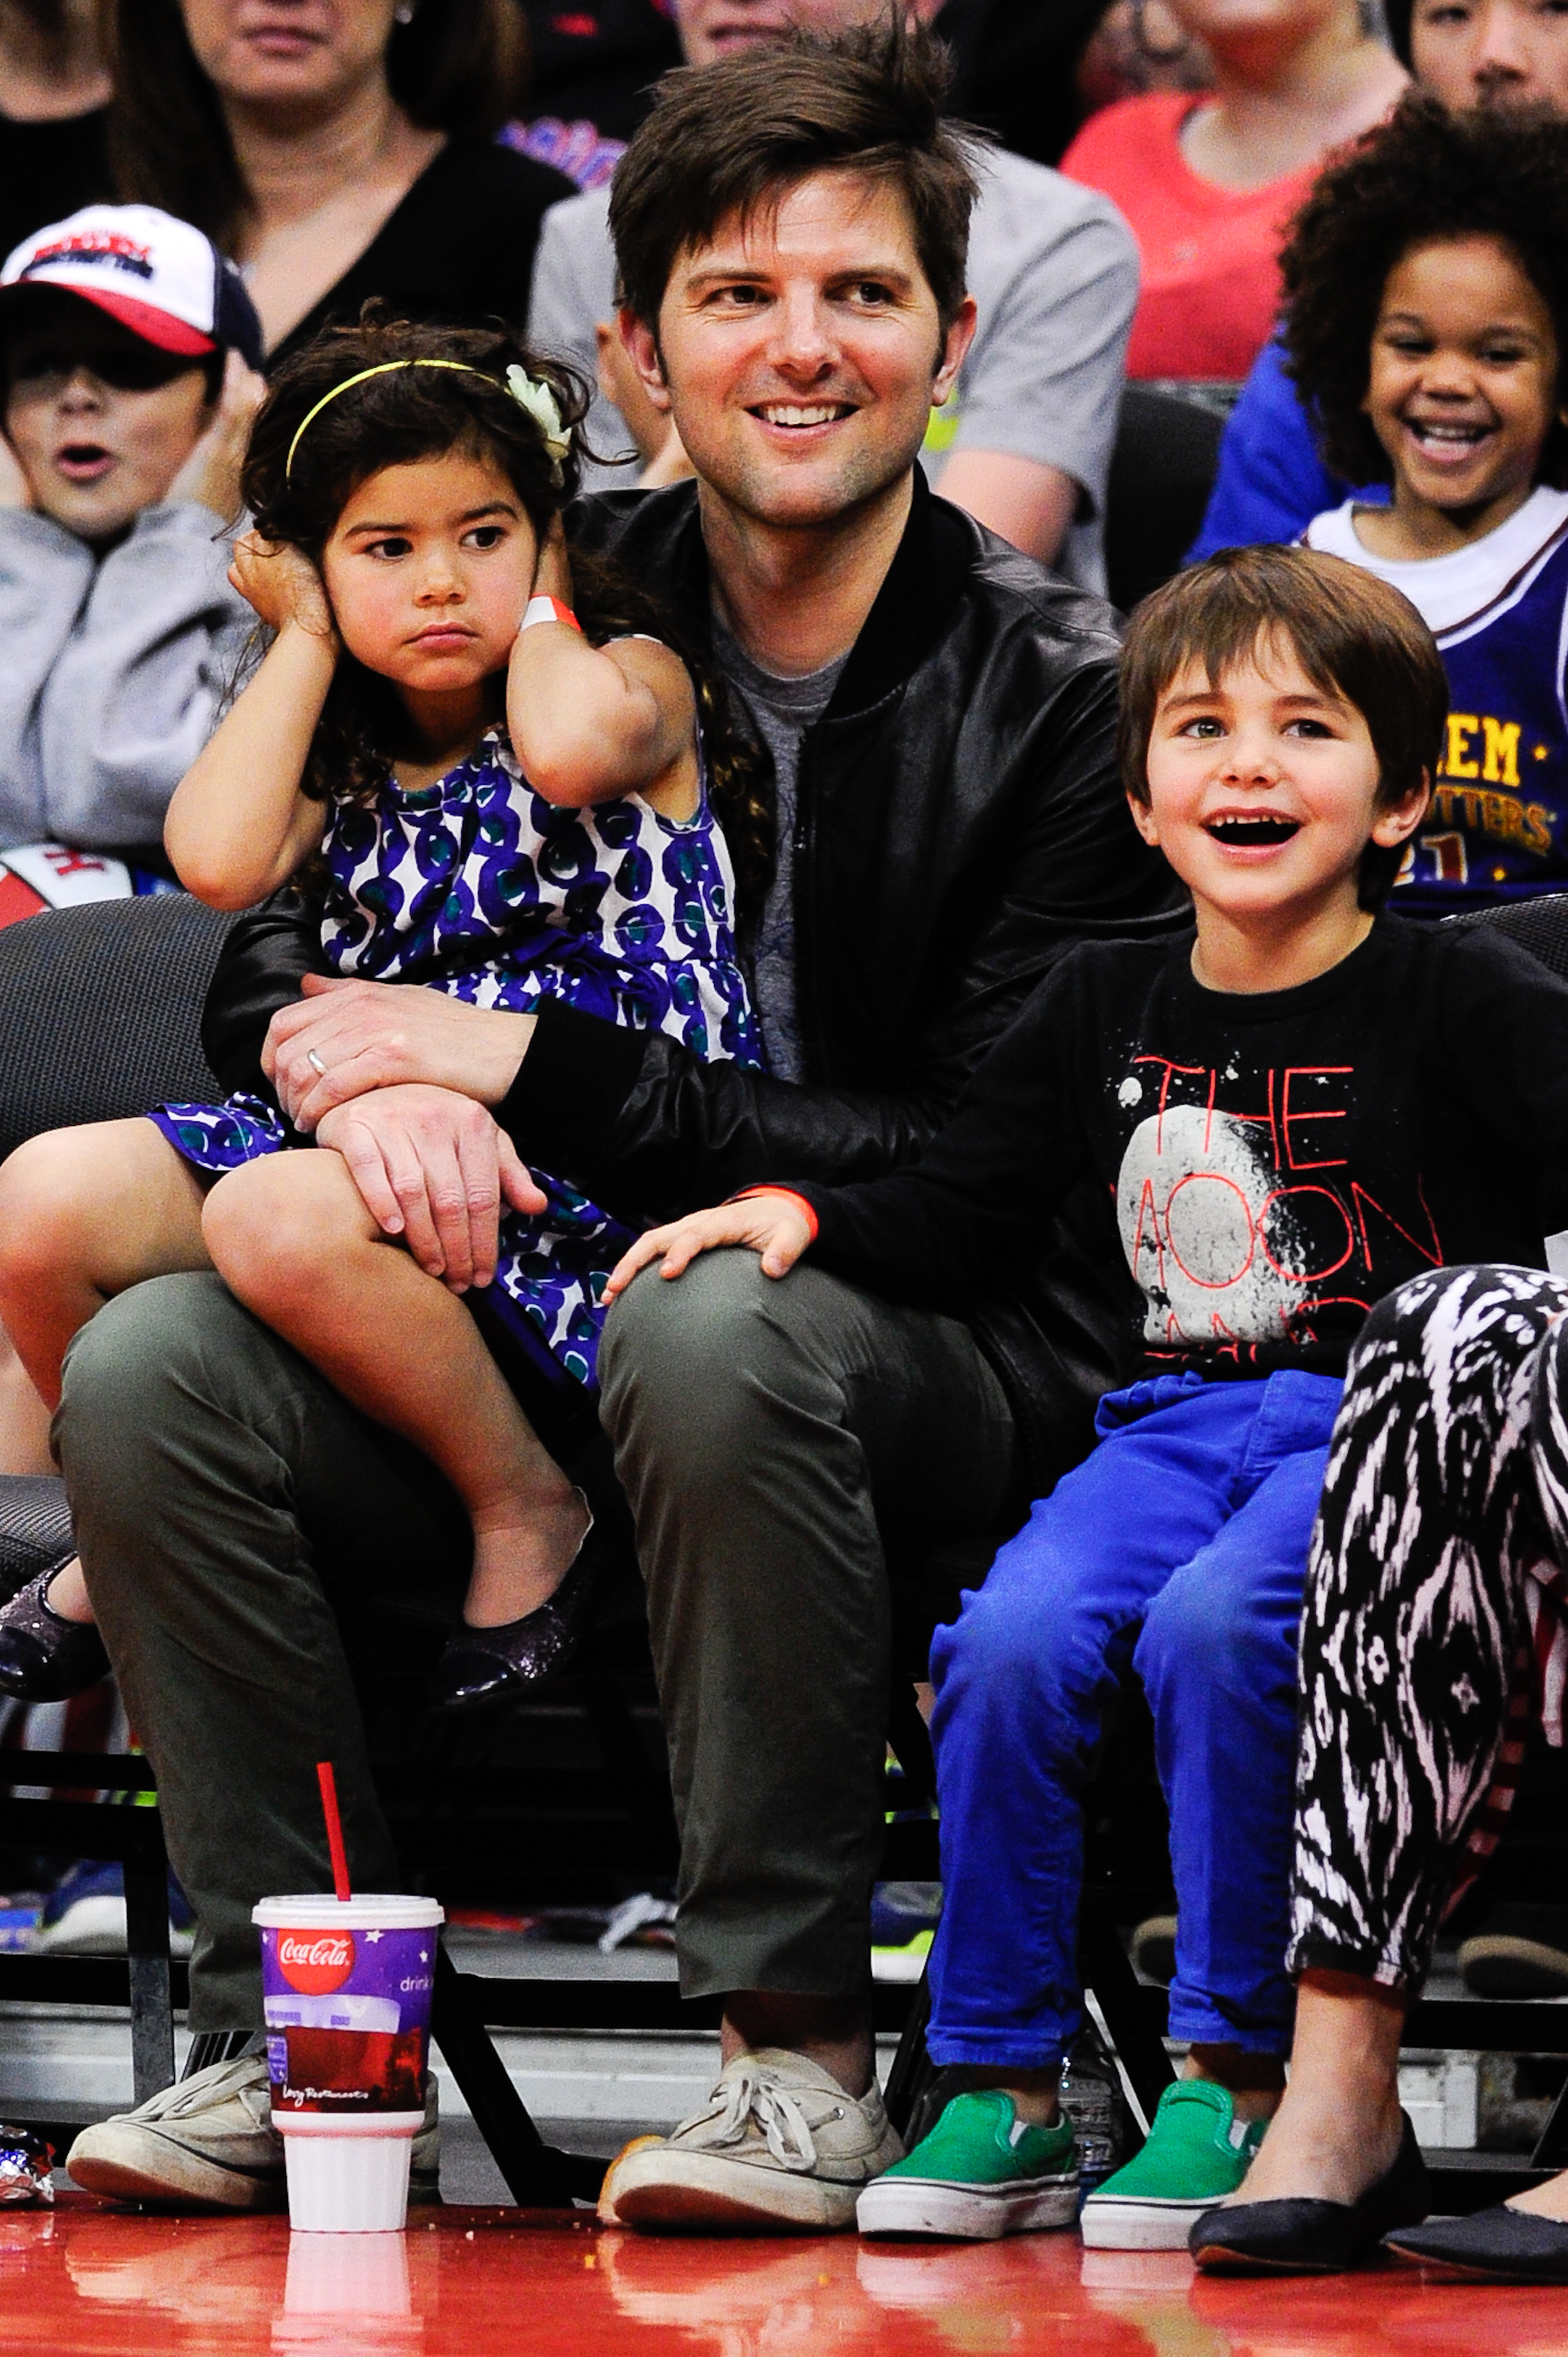 Adam Scott's little girl found the Harlem Globetrotters performance at the Staples Center to be a little overwhelming this past February!